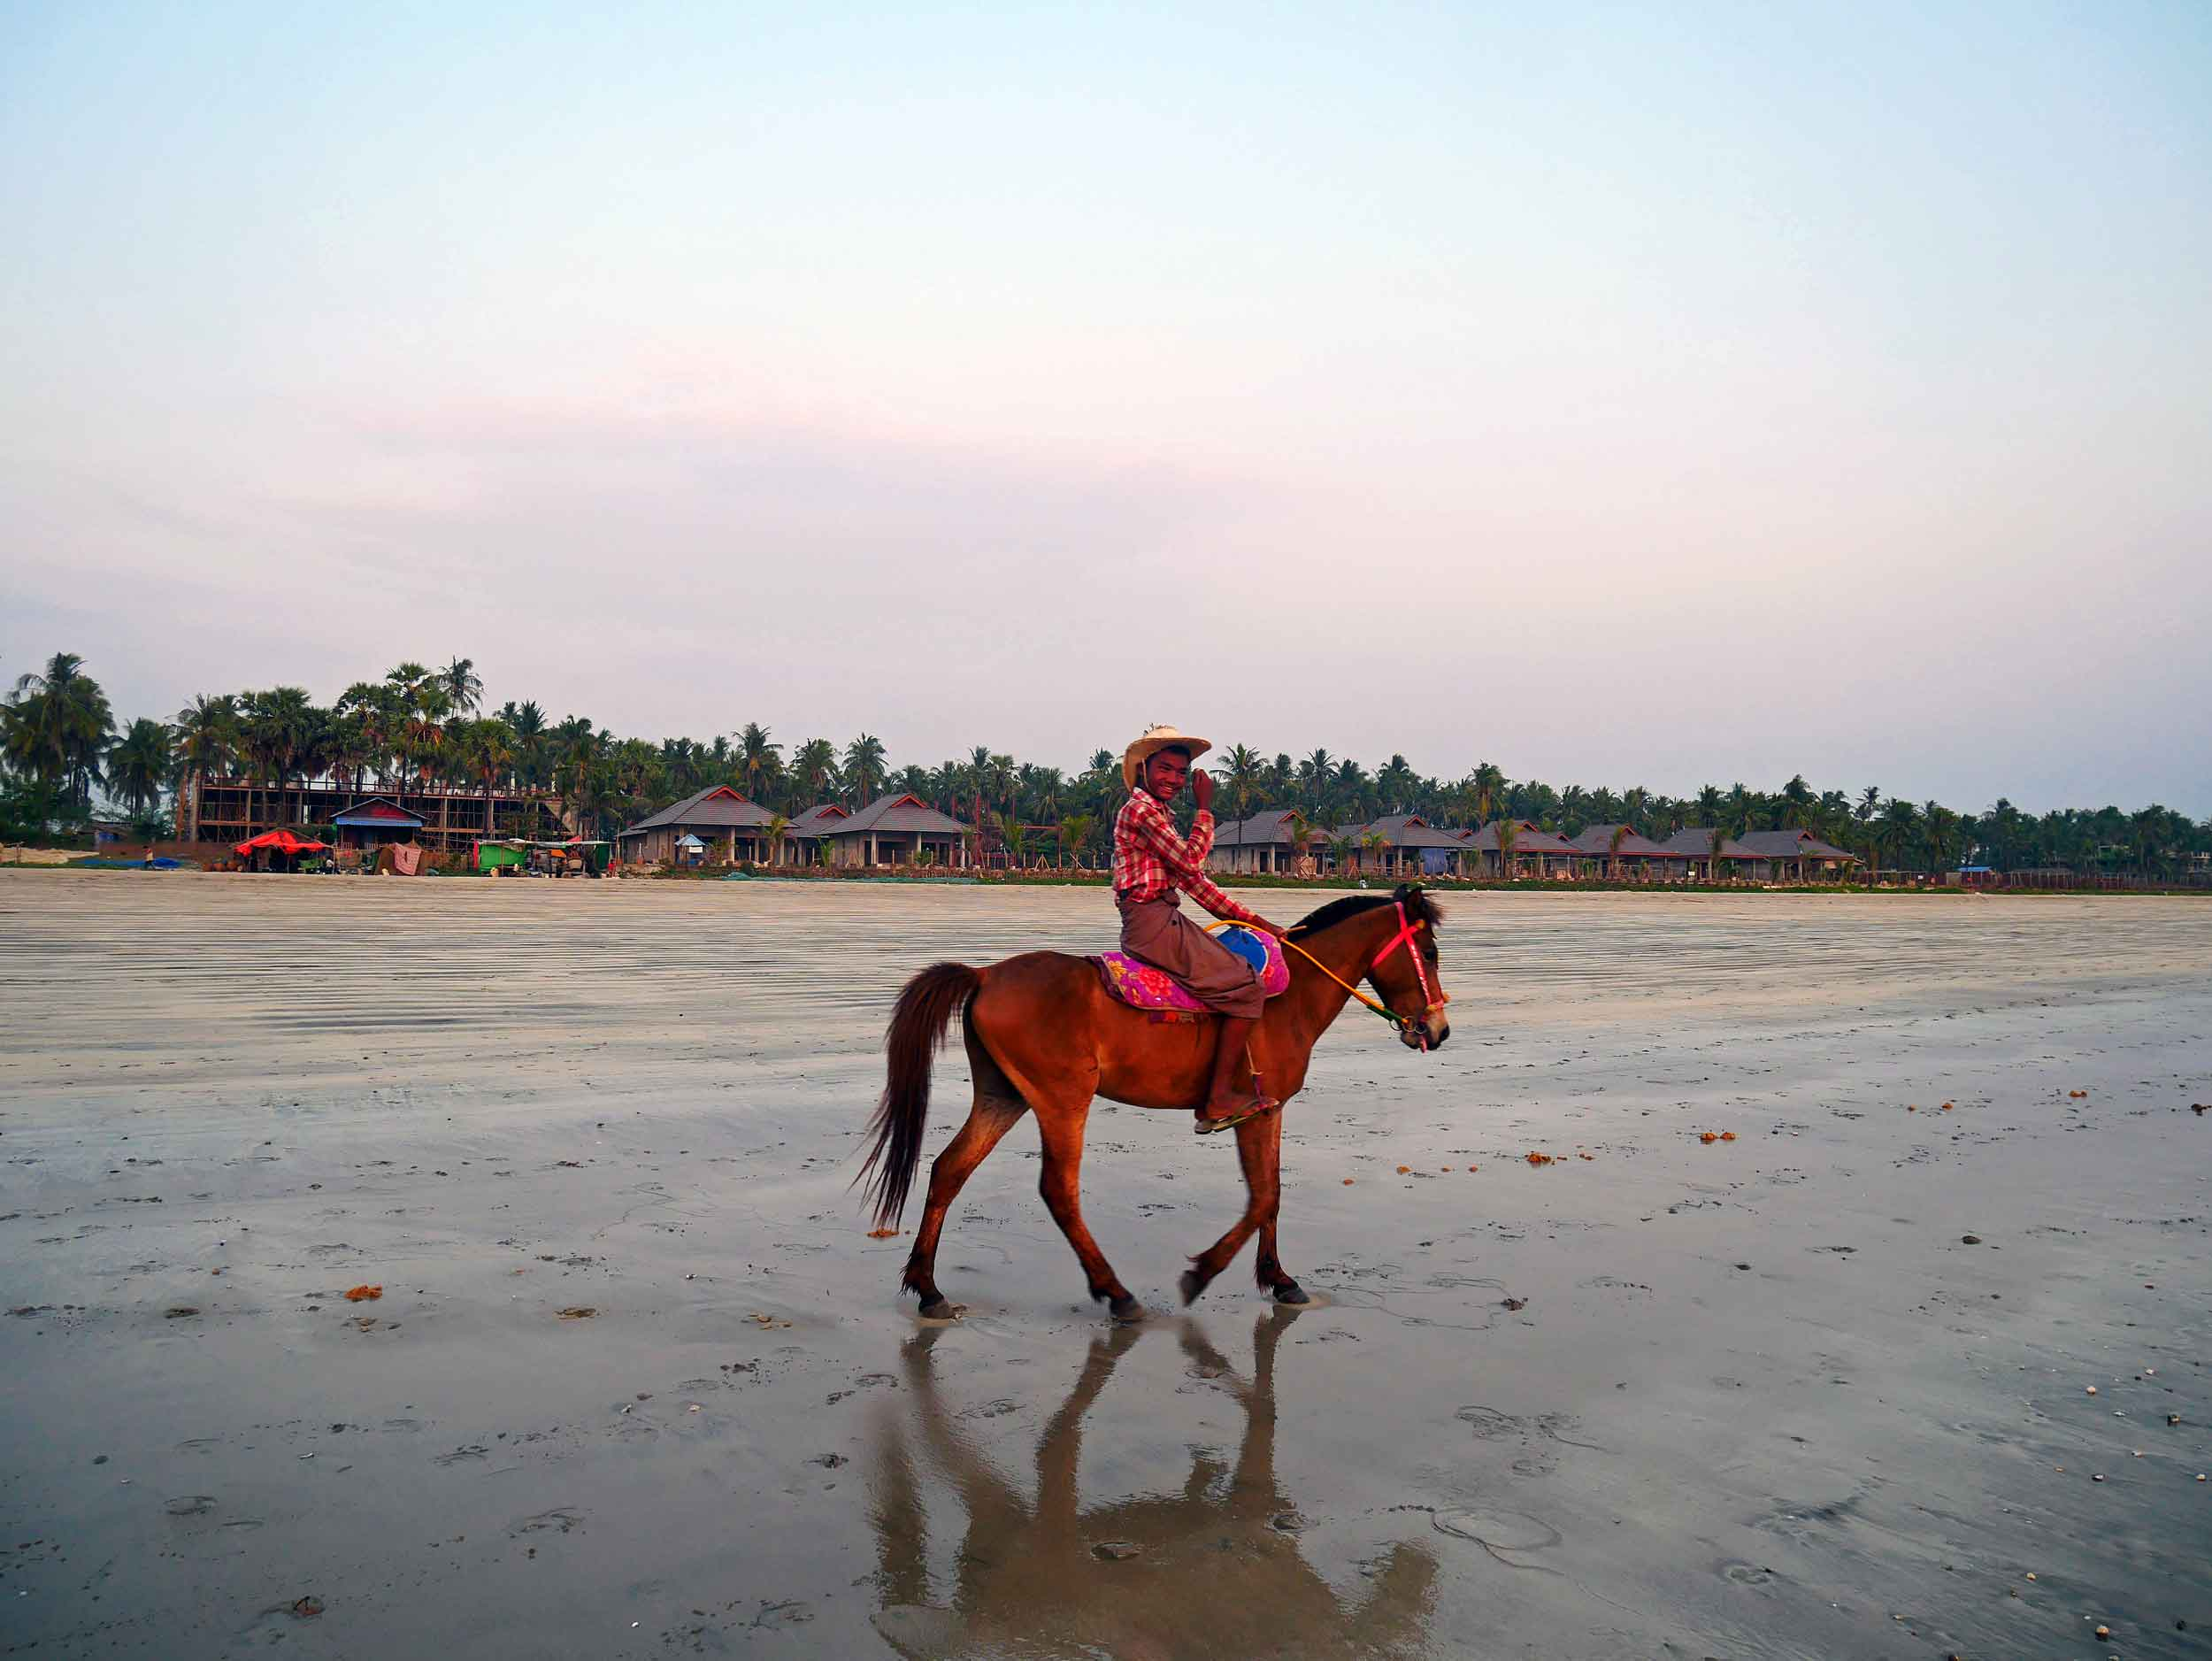 Young men on horseback gallop along the beach from point to point, often showing off for photos.